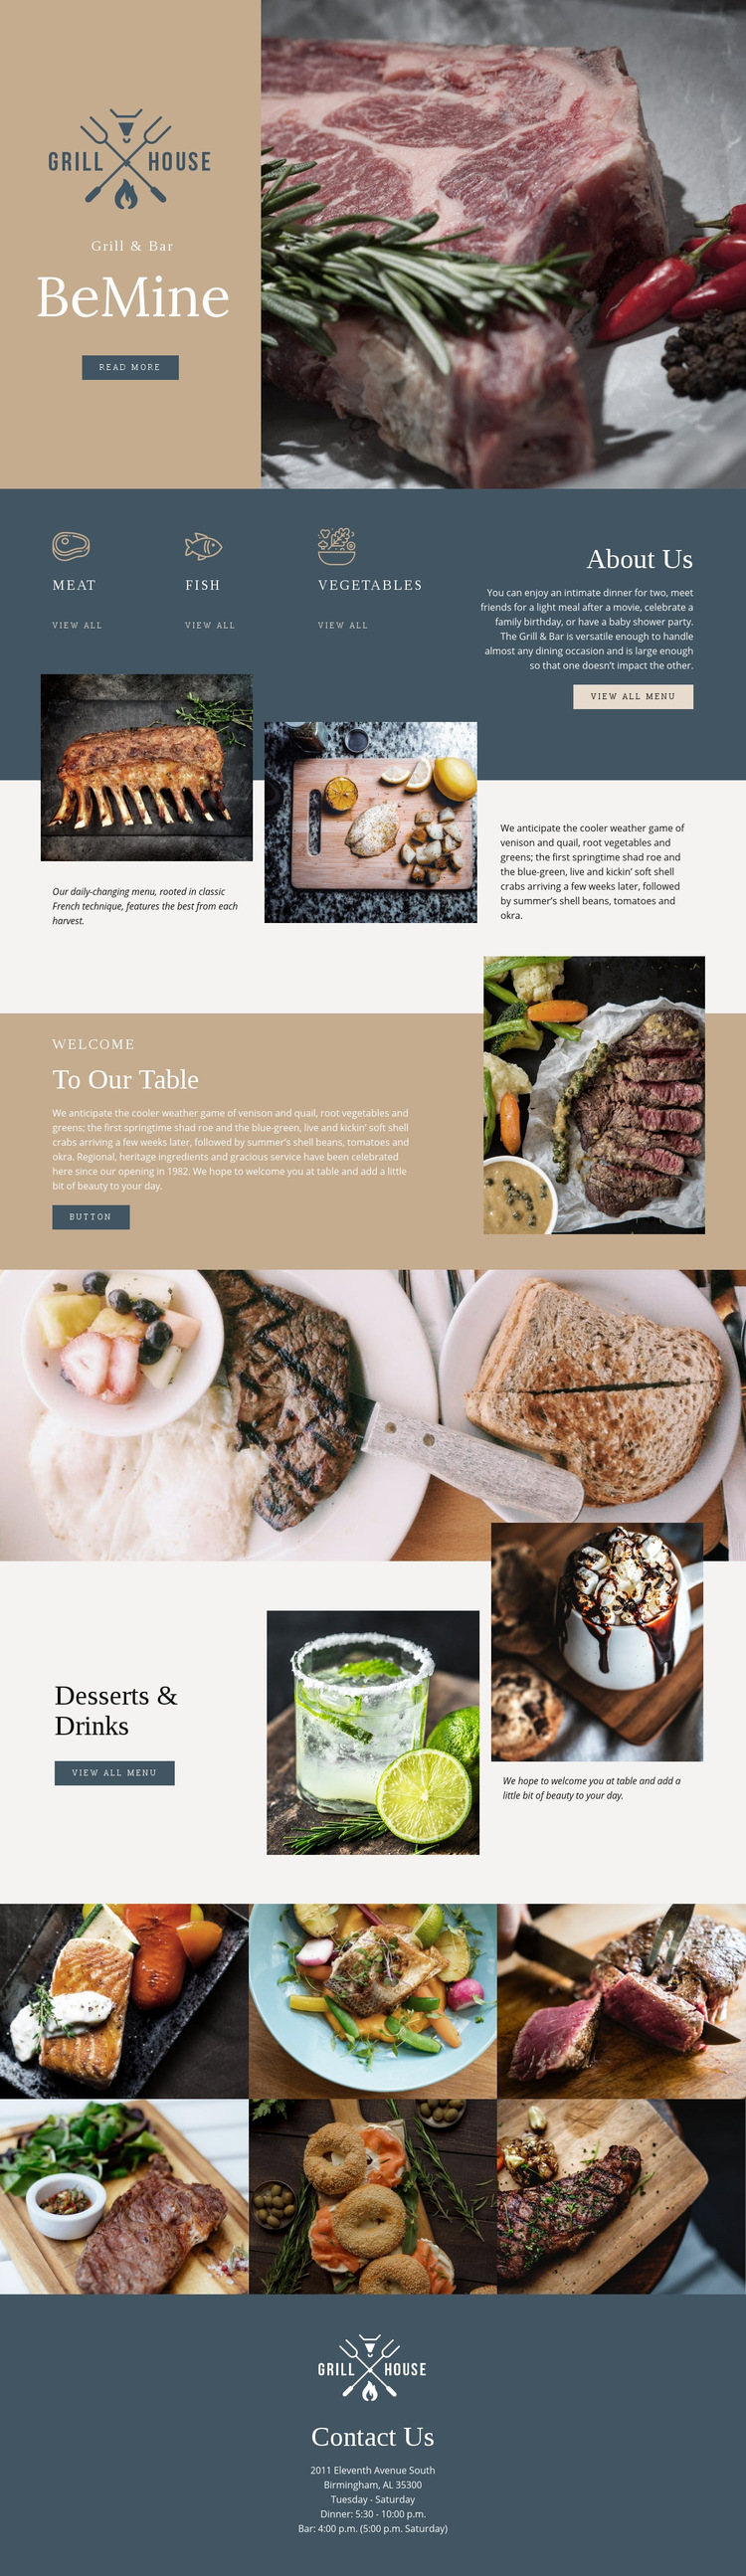 Finest grill house restaurant Web Page Design